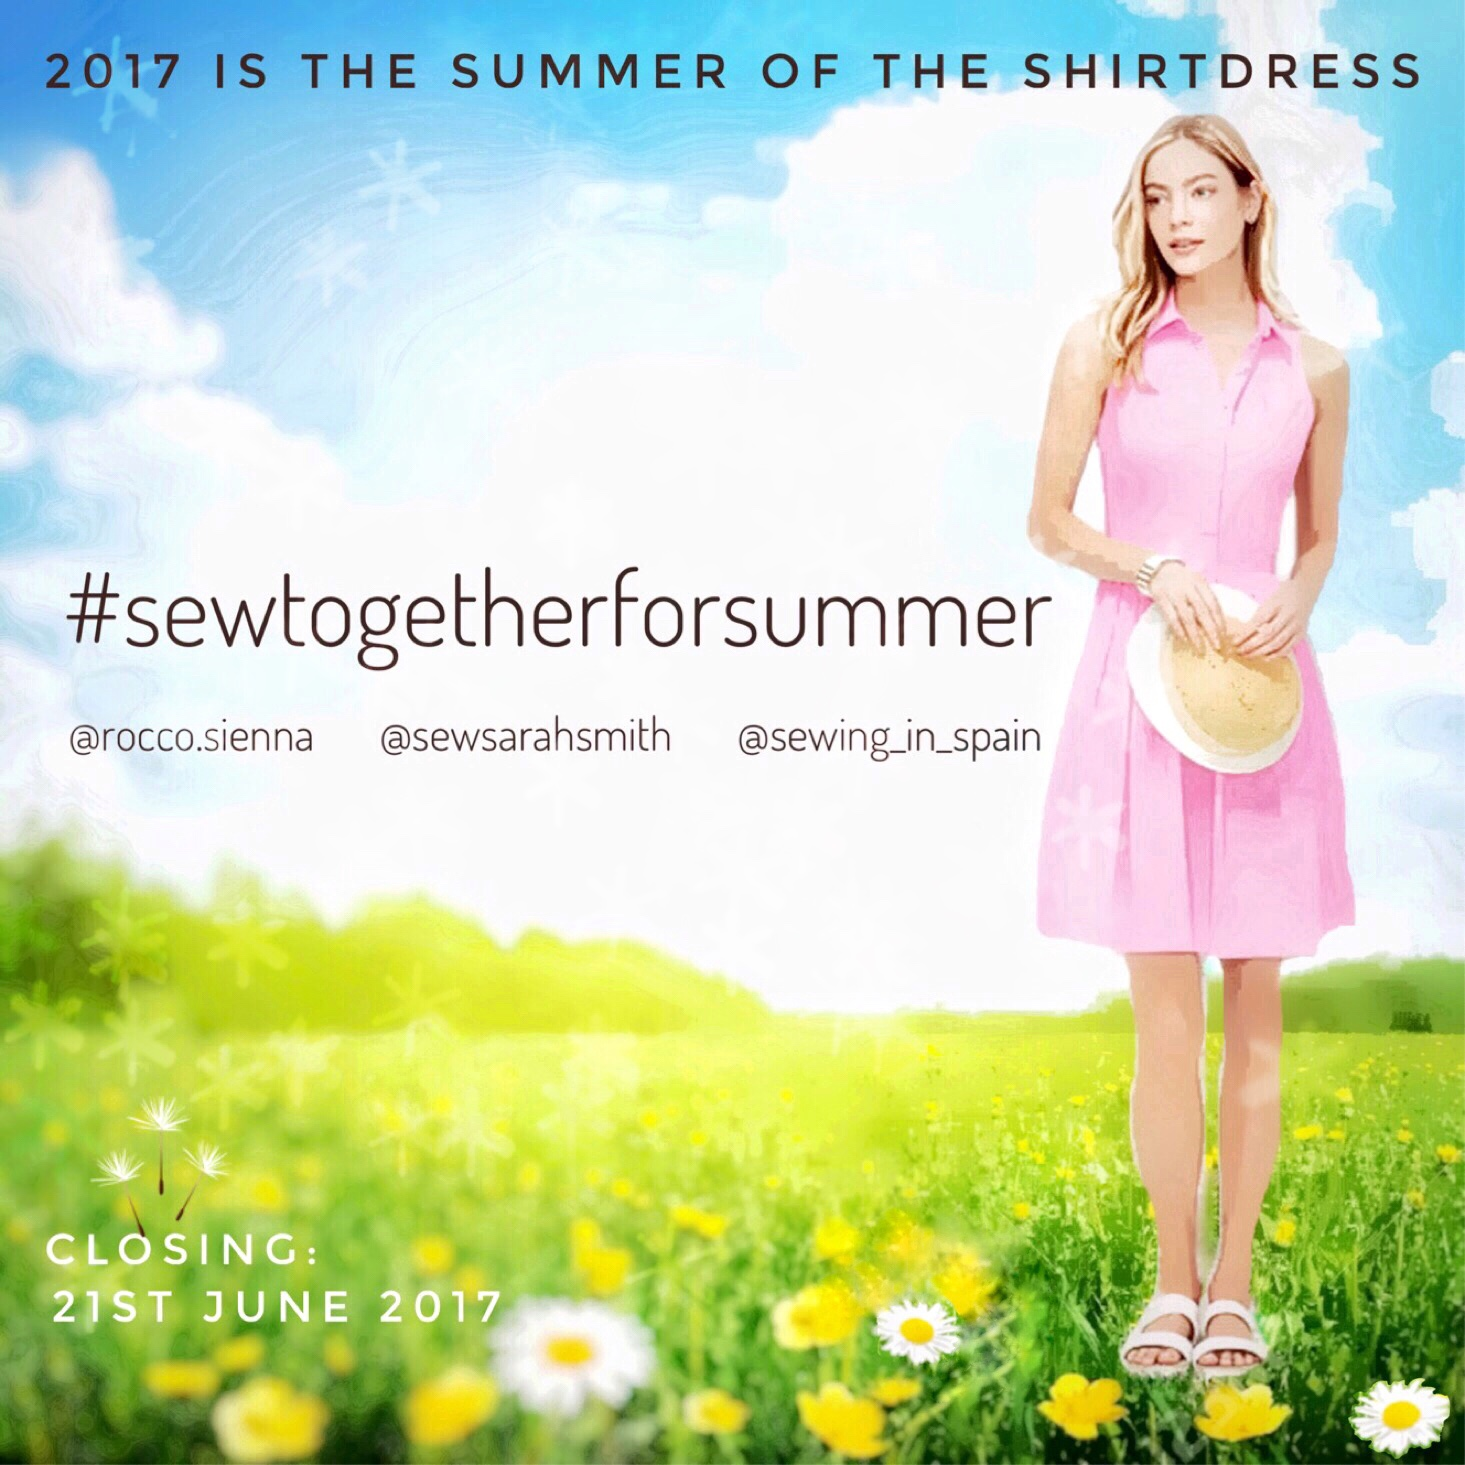 #sewtogetherforsummer